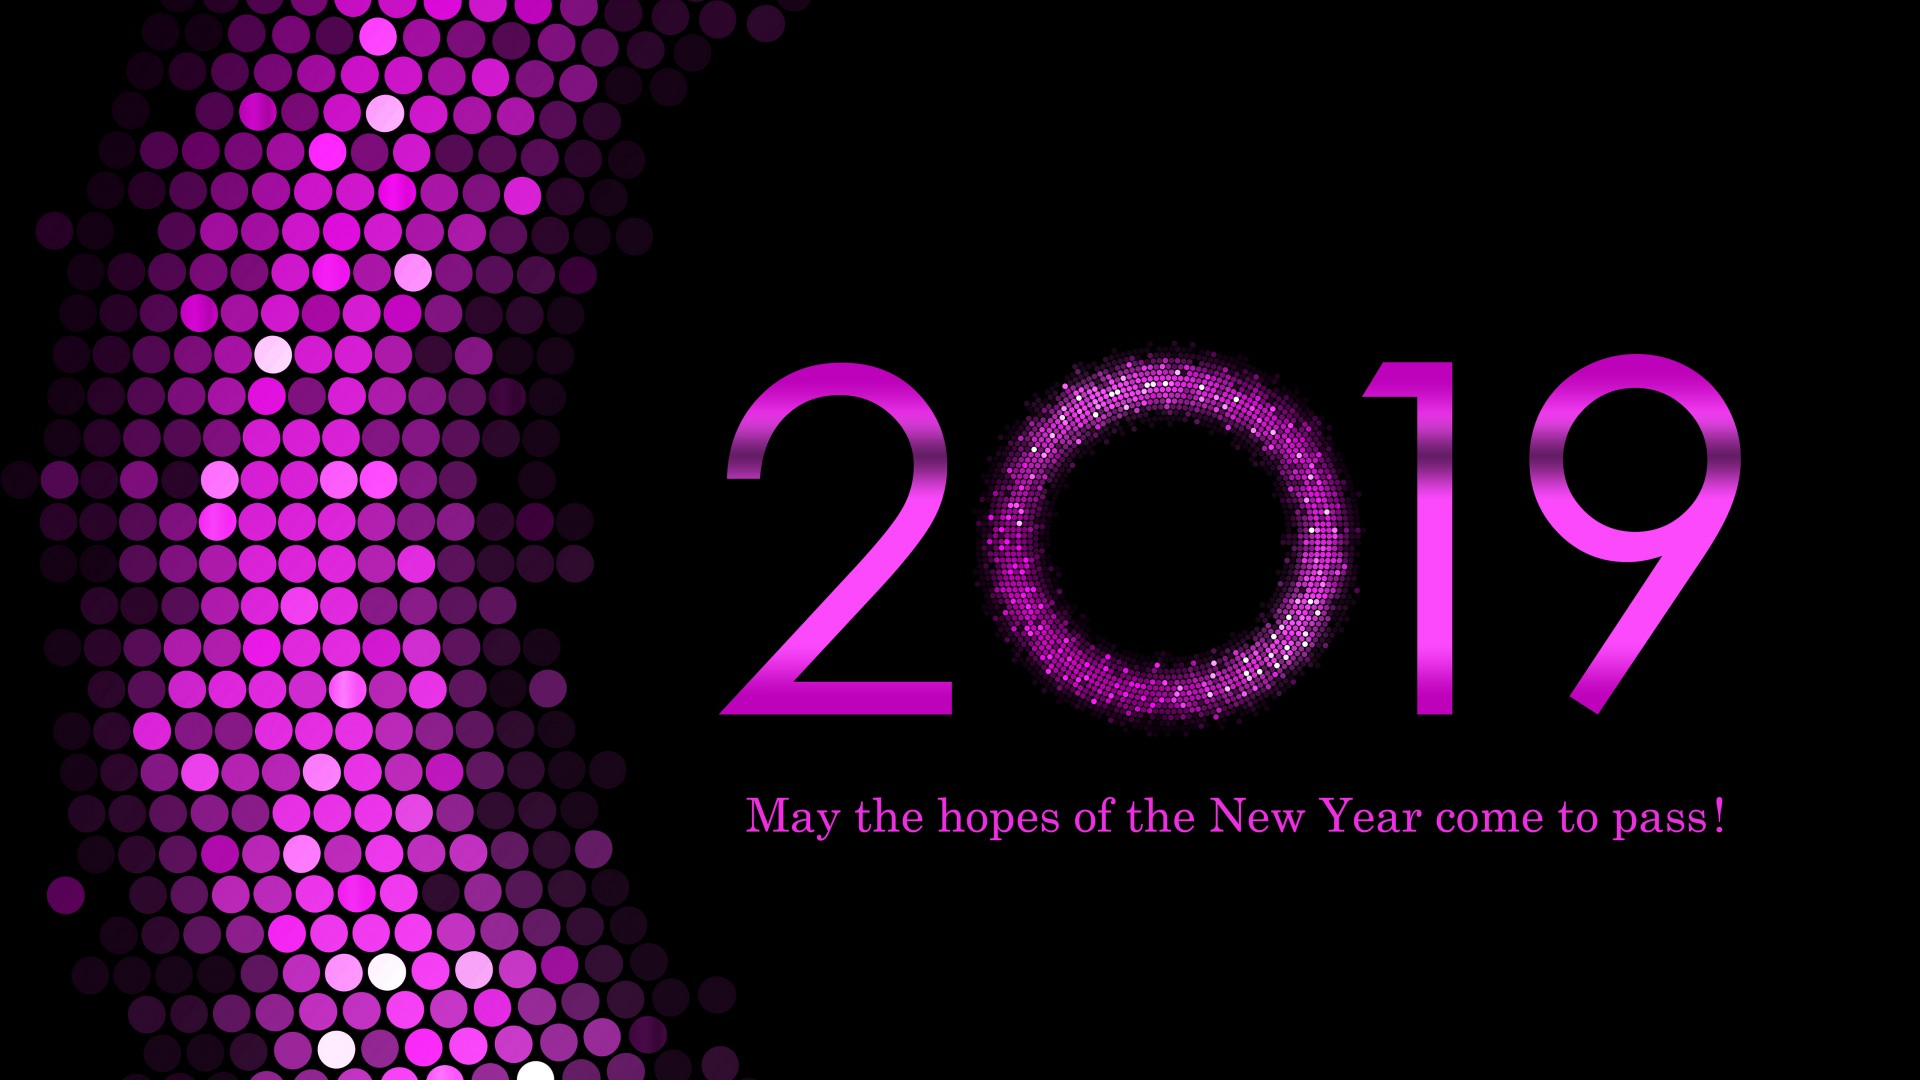 Happy New Year 3d Wallpaper 2109 Happy New Year Wallpapers Hd Wallpapers Id 27141